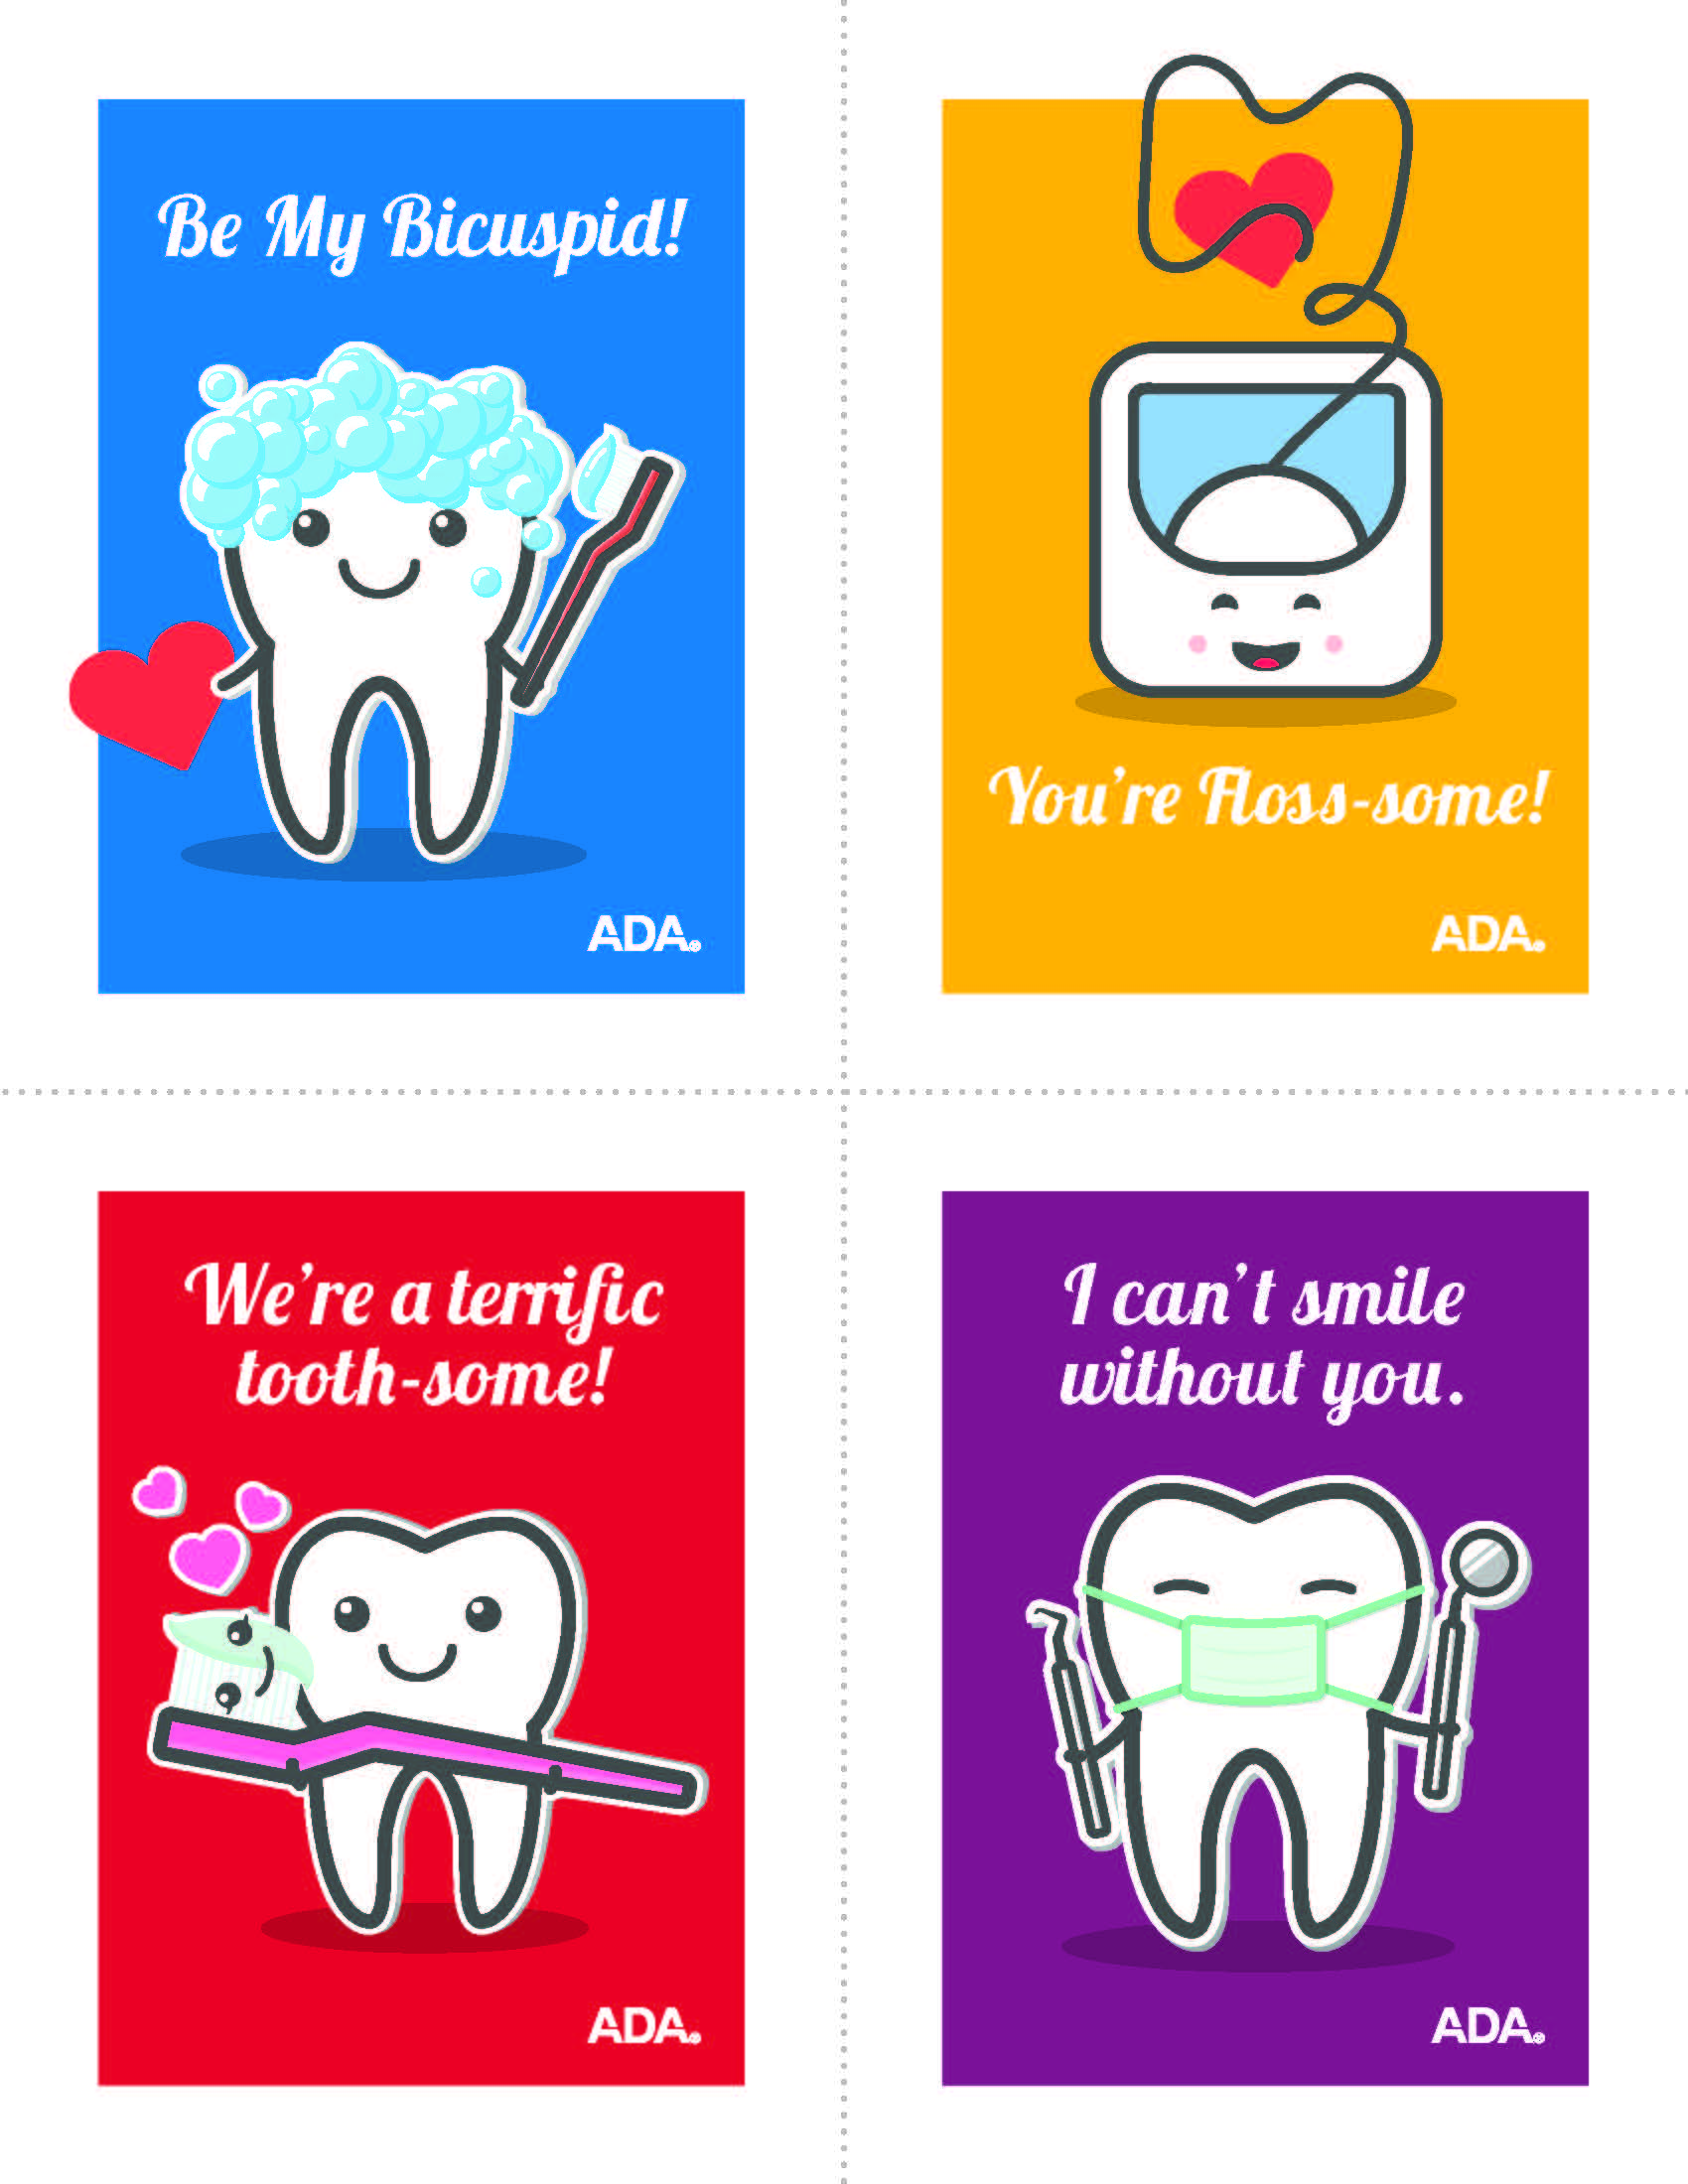 Western Dental Kids - Valentine Cards 3